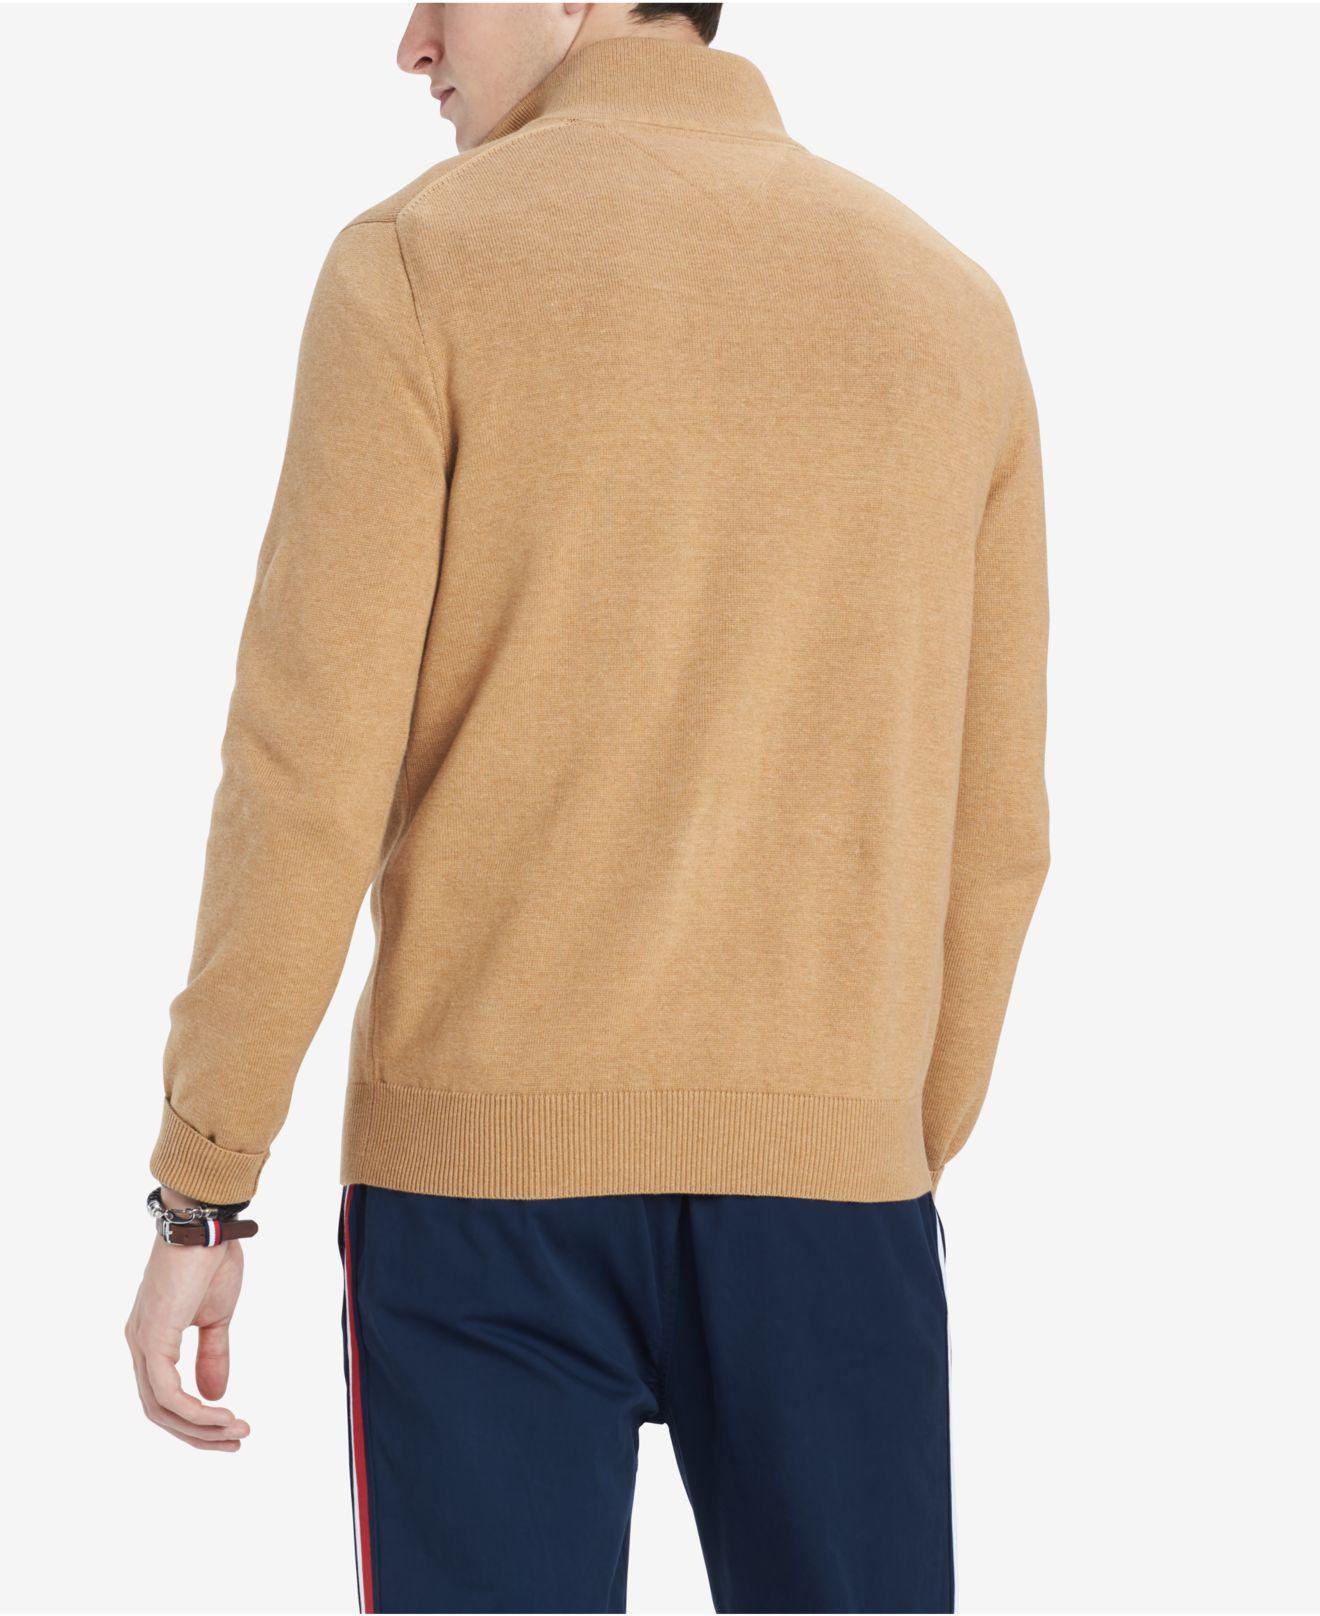 f82dcb6f7 Lyst - Tommy Hilfiger Quarter-zip Sweater